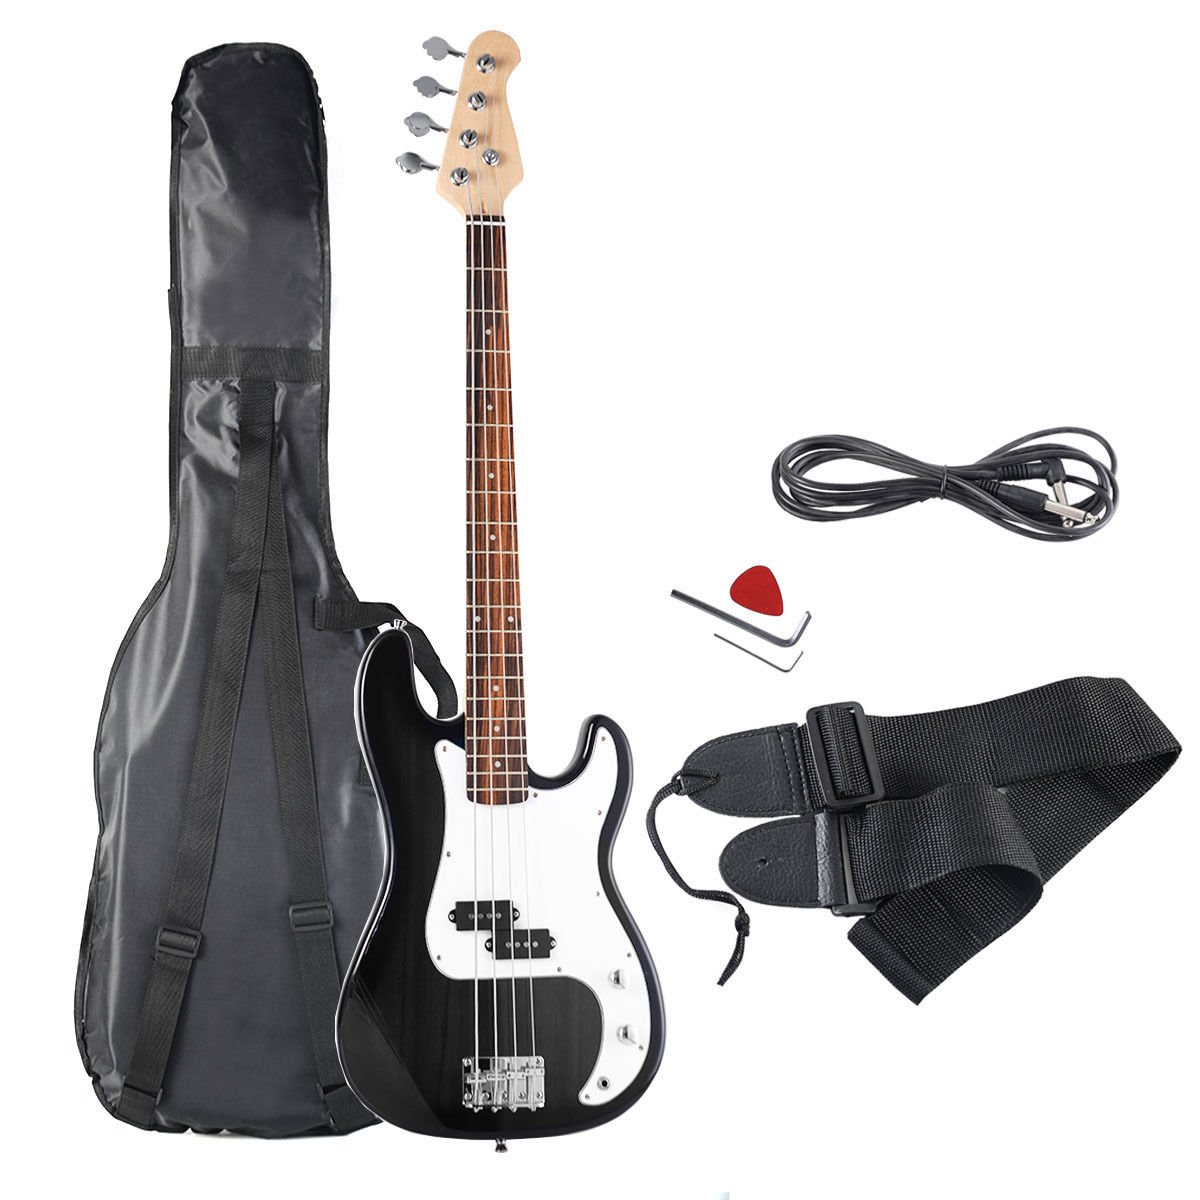 Goplus Electric Bass Guitar Full Size 4 String with Strap Guitar Bag Amp Cord (Black)